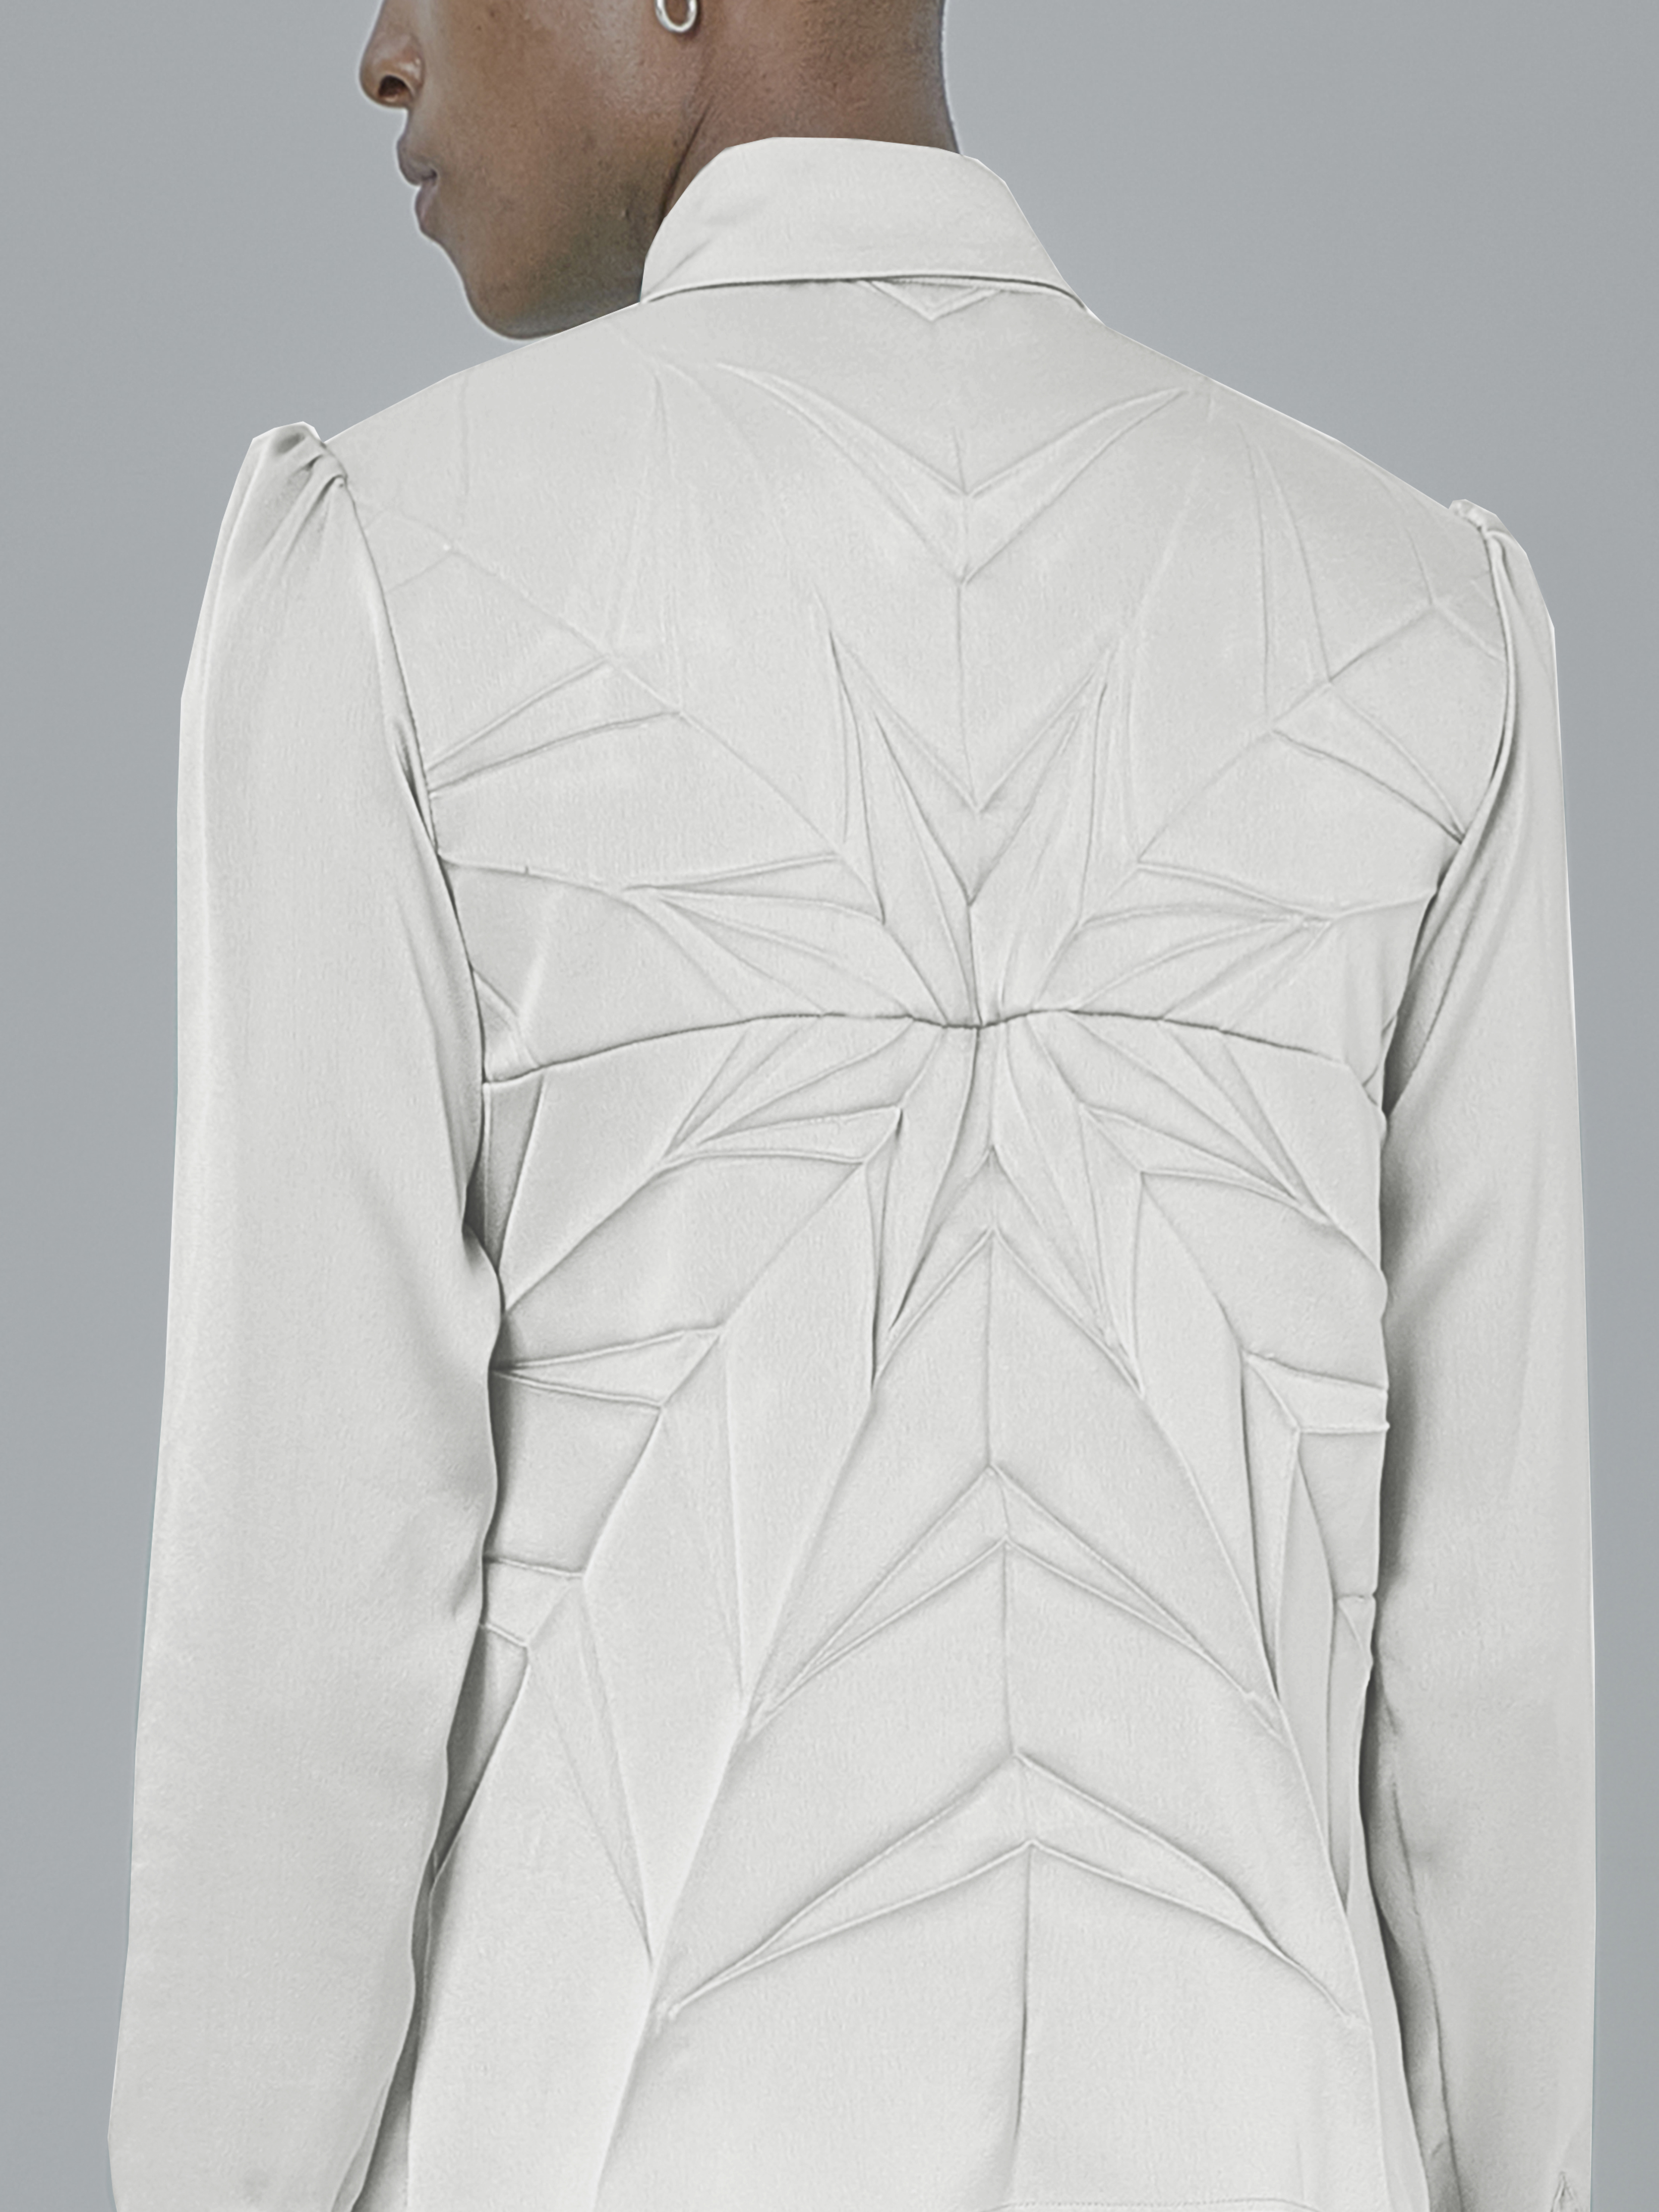 Solar Shirt - White by Georgia Hardinge on curated-crowd.com